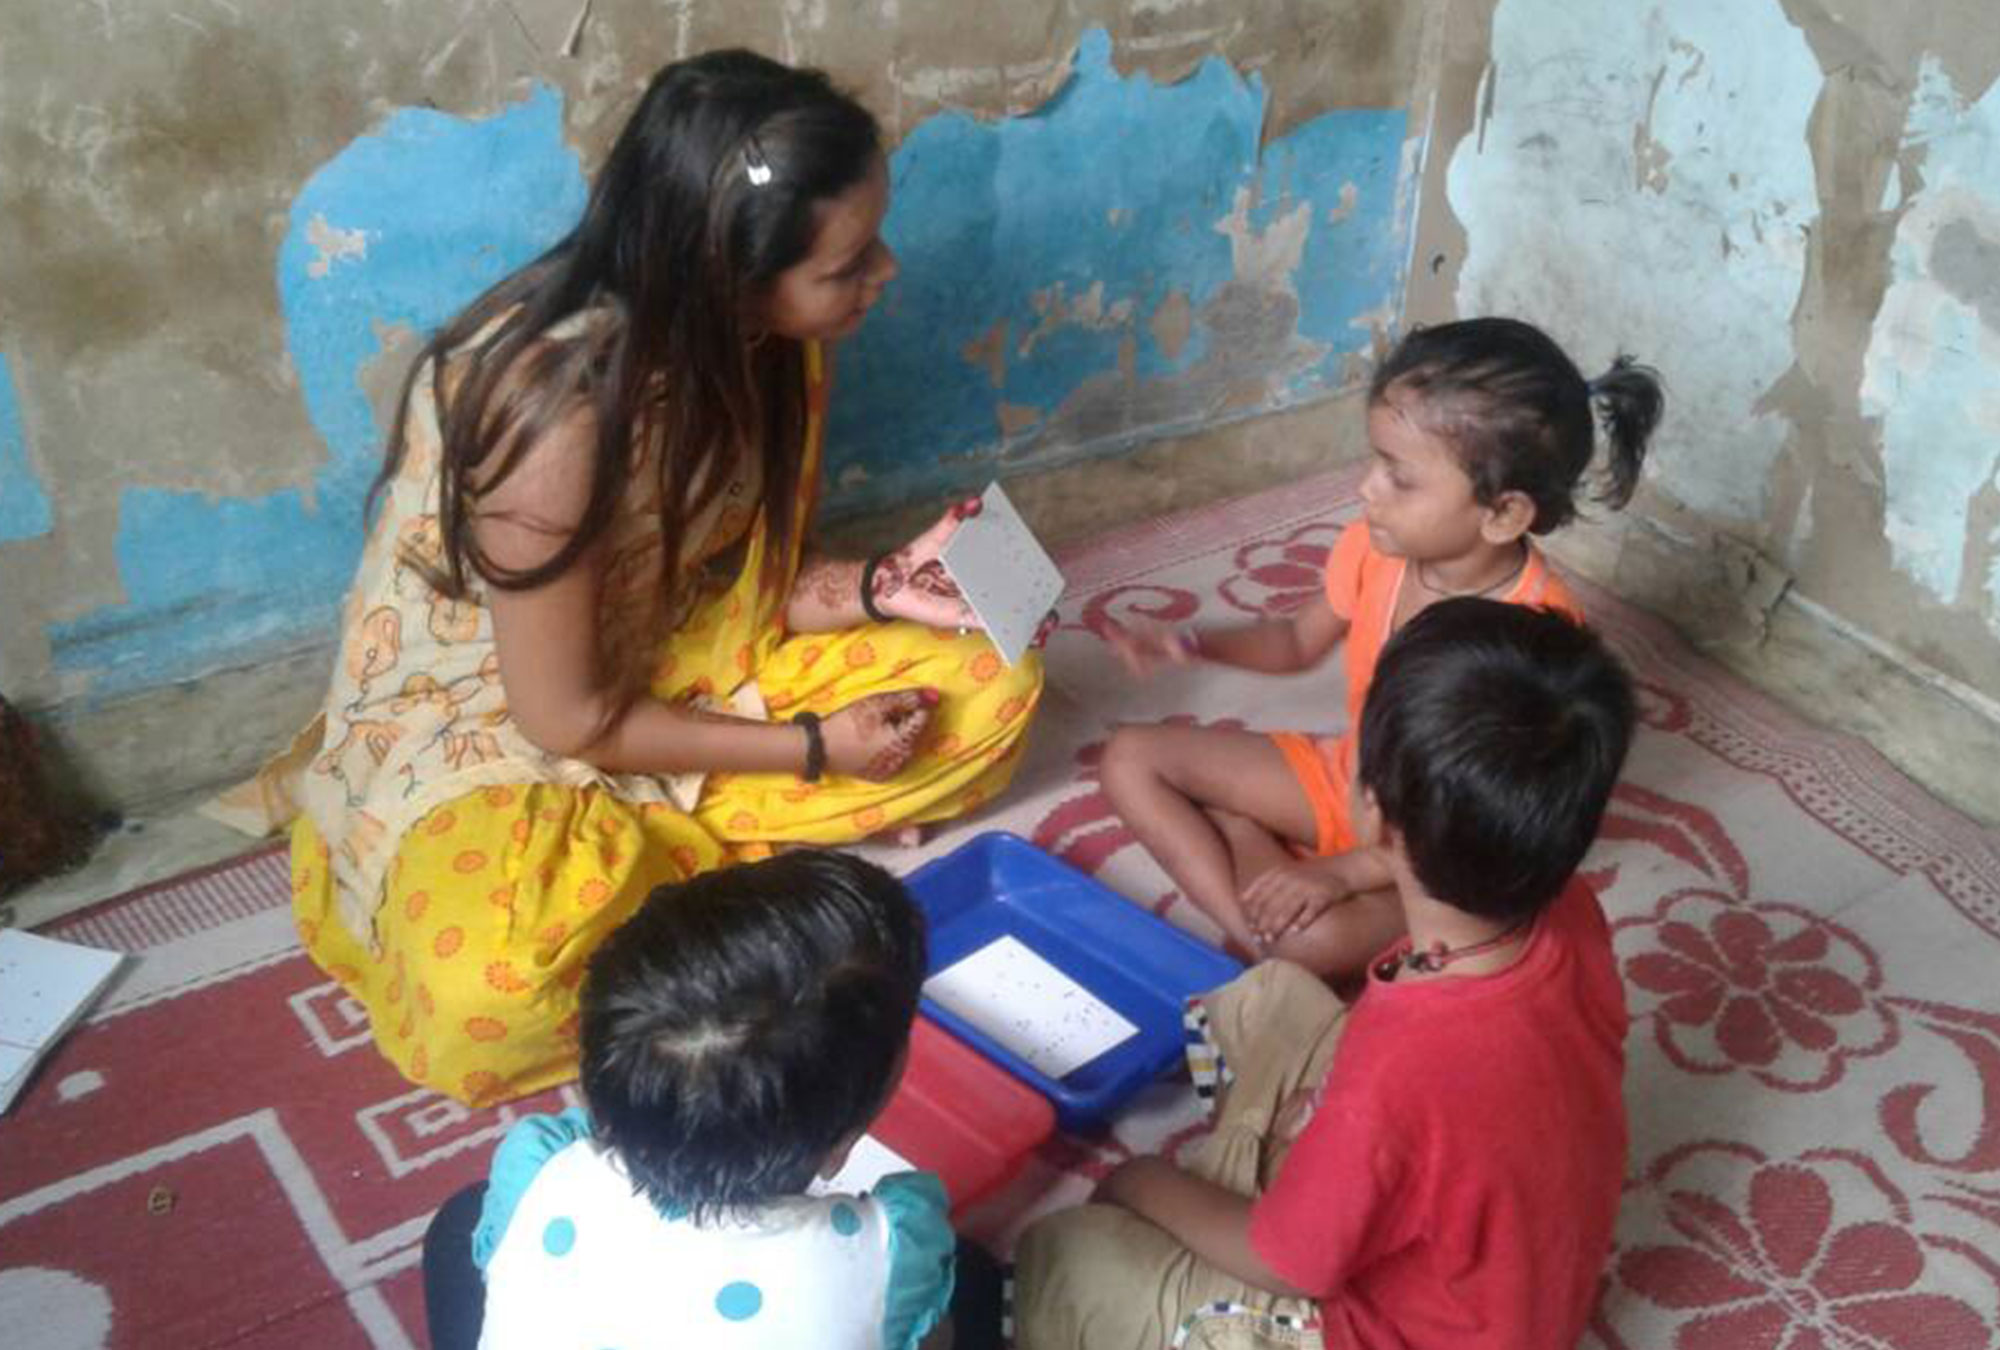 Woman sits with two kids as they play math games